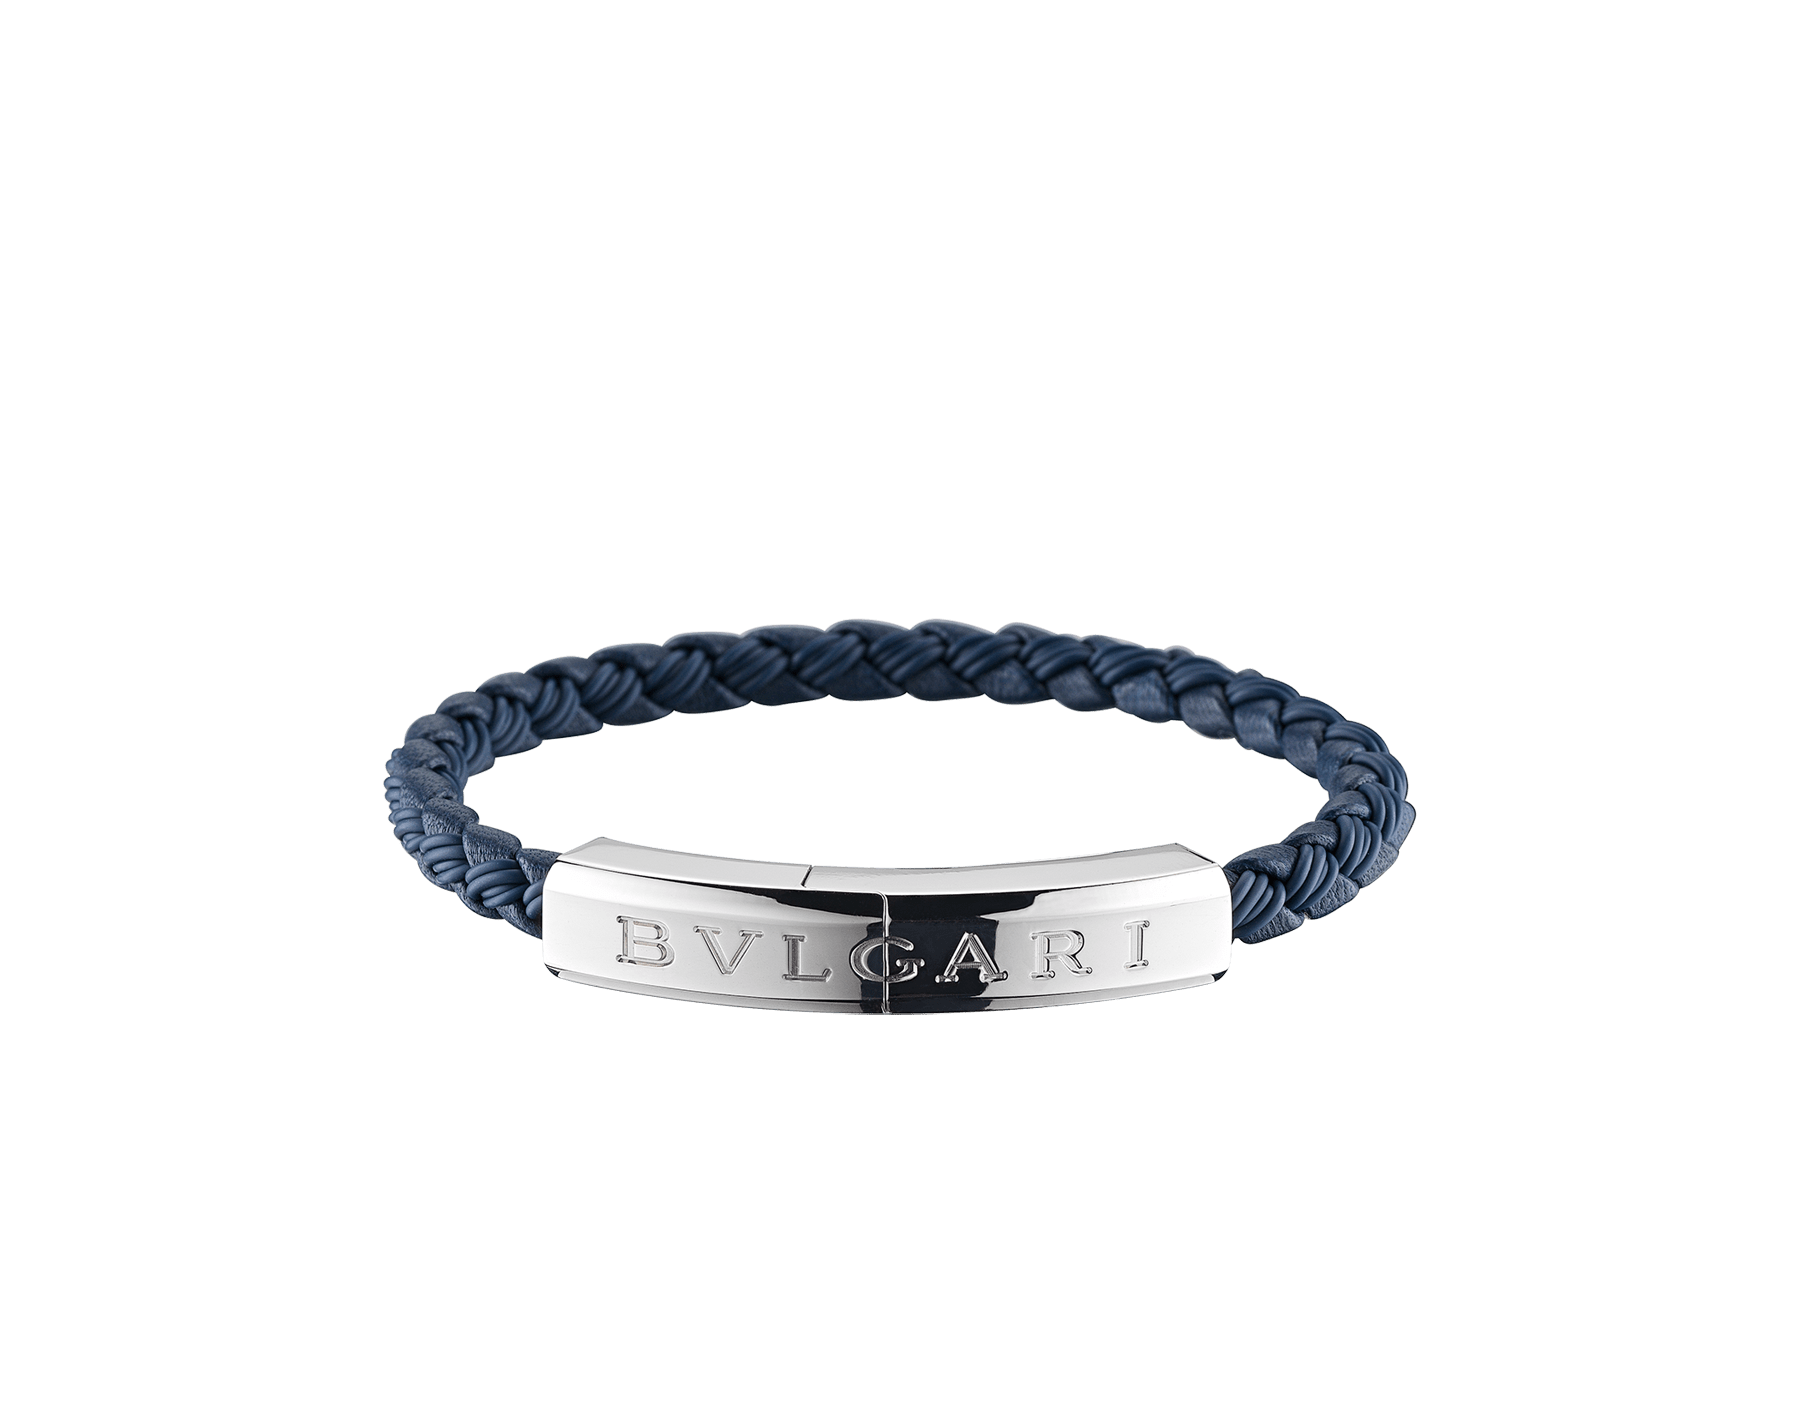 """BVLGARI BVLGARI"" bracelet in Denim Sapphire blue calf leather and rubber with a silver plated closure with Bvlgari logo. LogoPlate-CLR-DS image 1"